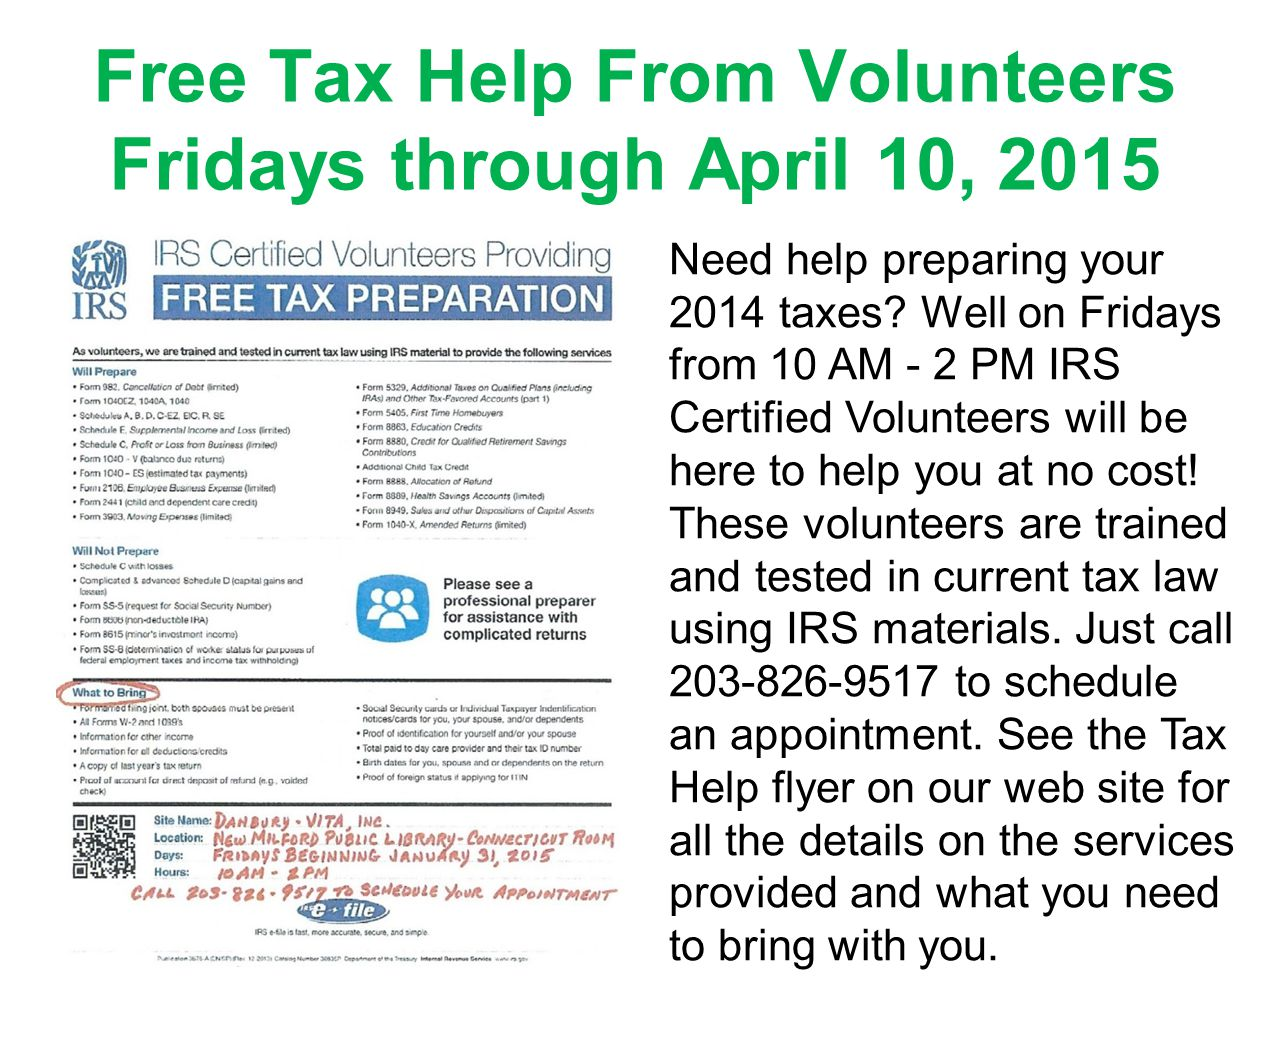 Free Tax Help From Volunteers Fridays through April 10, 2015 Need help preparing your 2014 taxes? Well on Fridays from 10 AM - 2 PM IRS Certified Volu